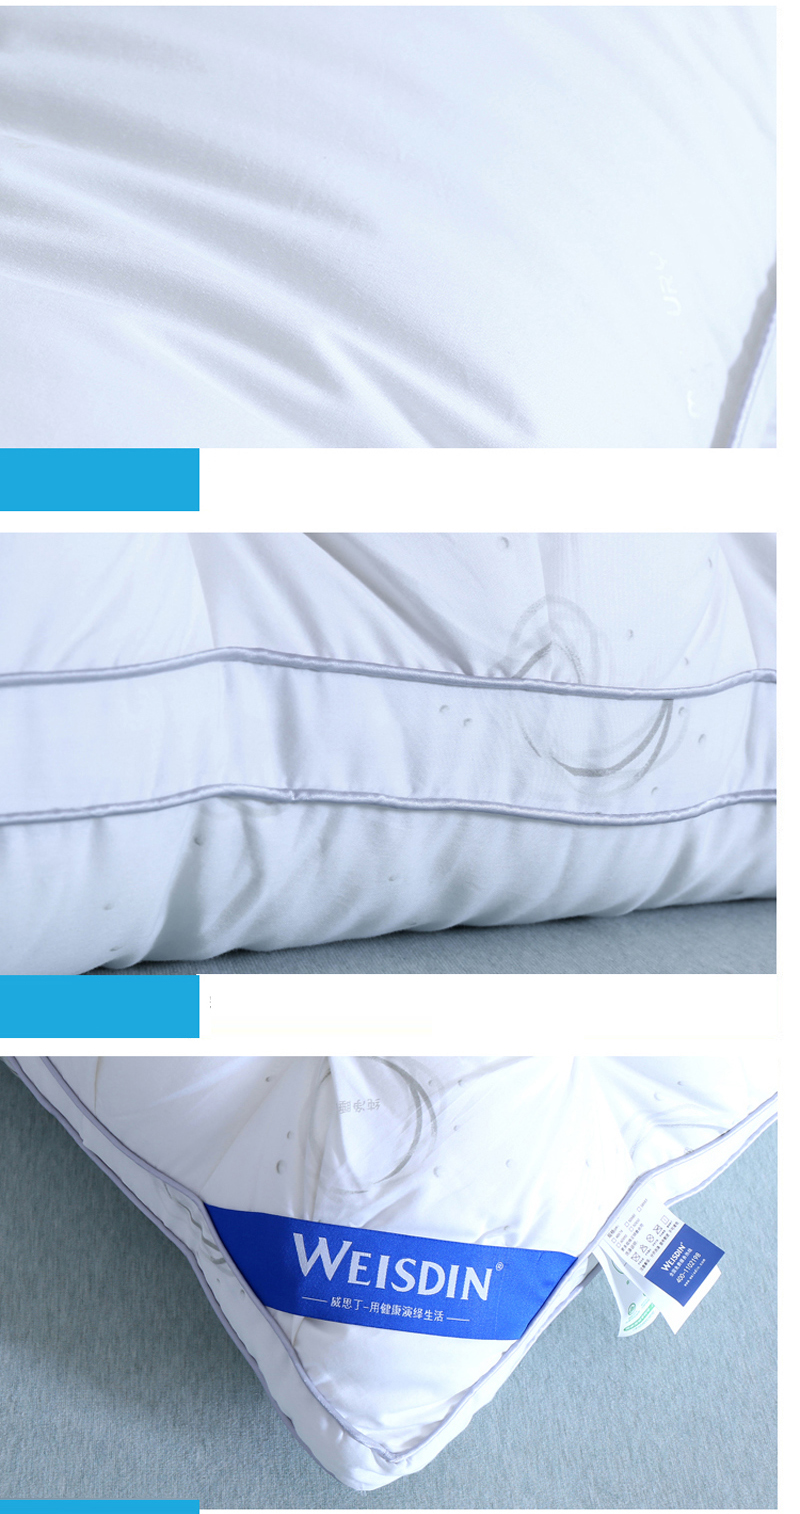 King Size Bed Pillows